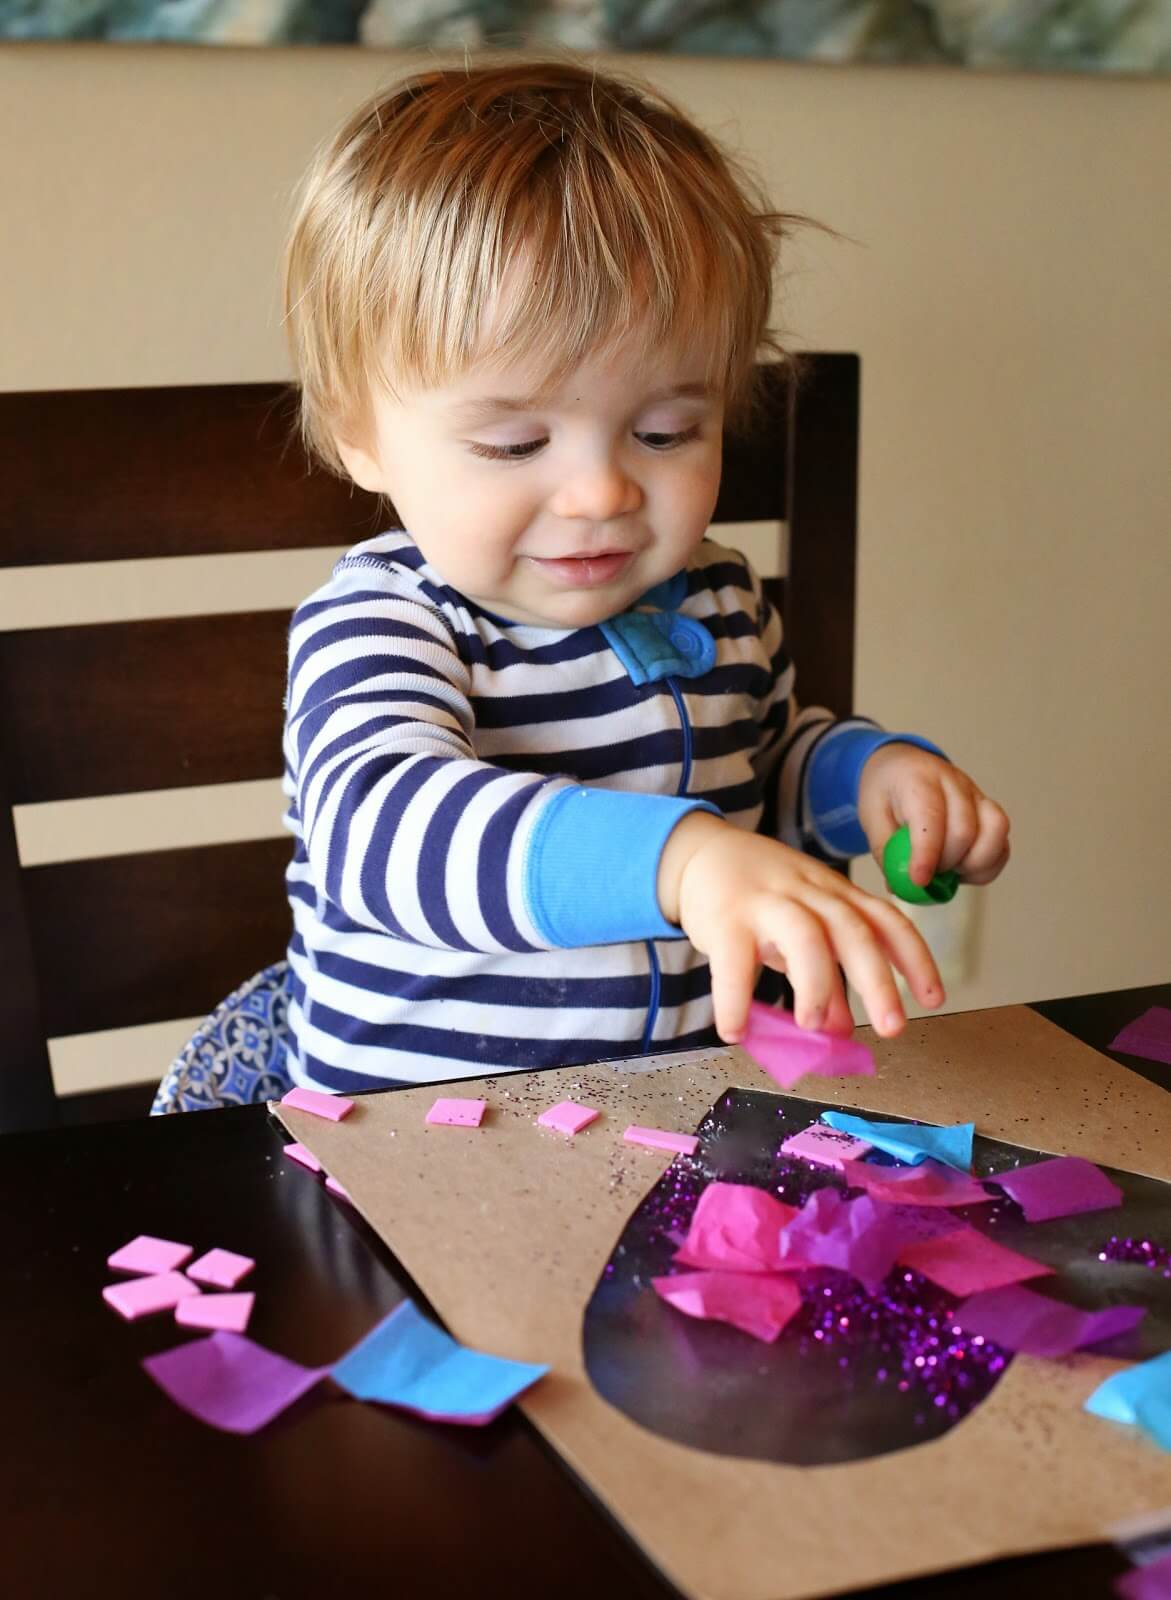 Valentine's Day Crafts for Babies - Heart Art